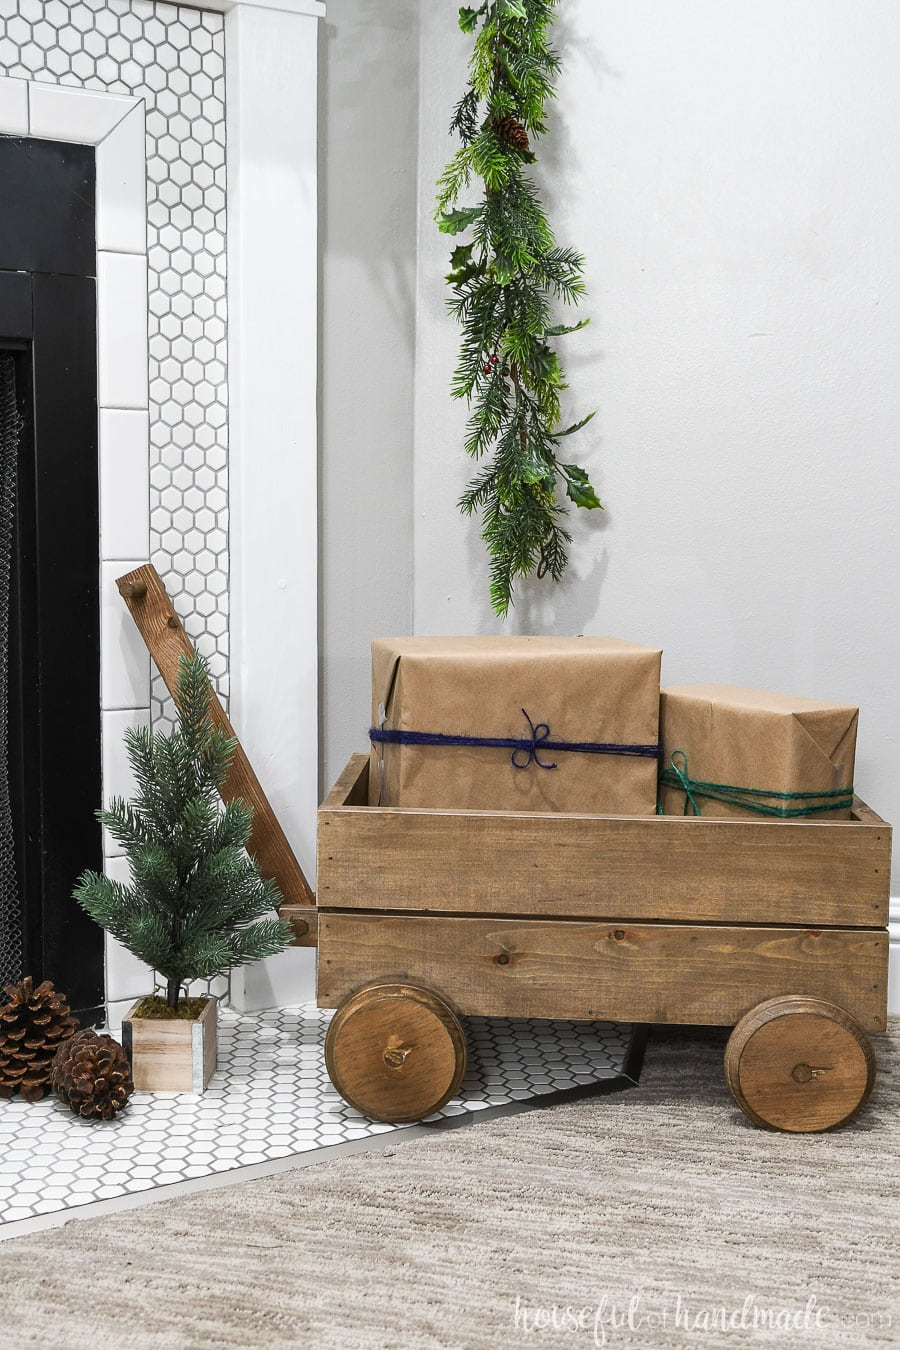 Decorative wood wagon with presents on the side of the classic Christmas mantel.